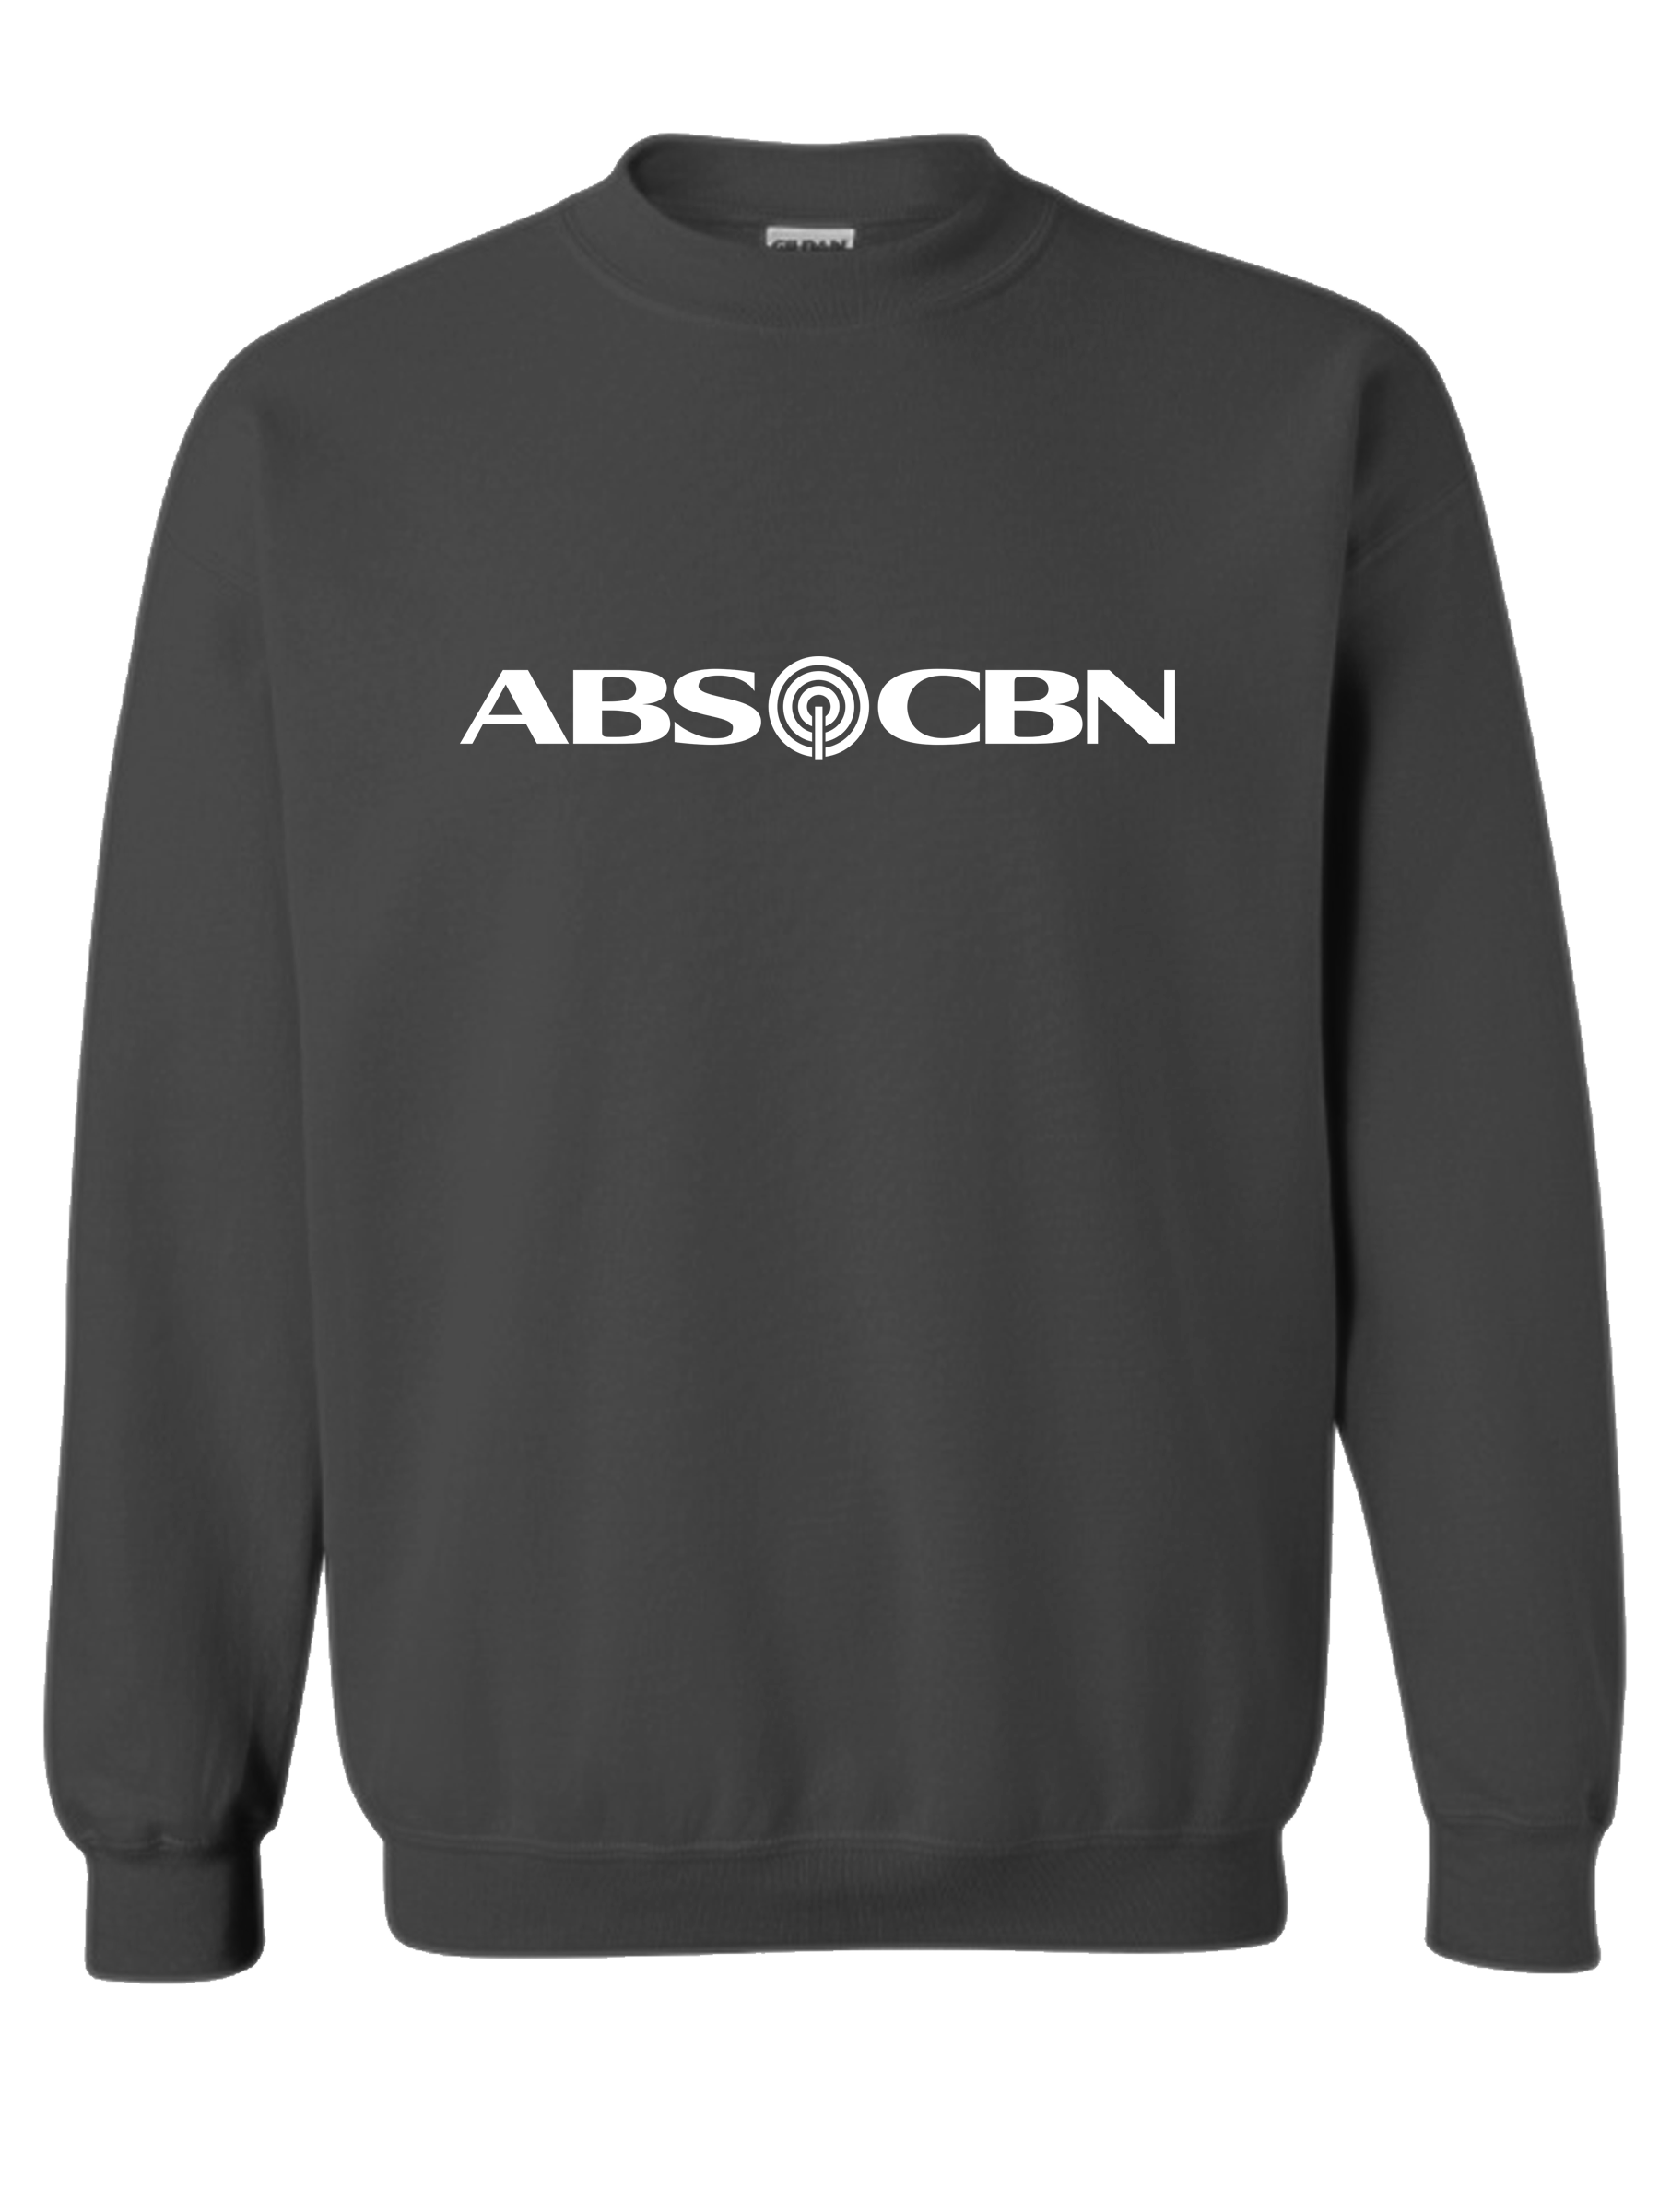 ABS-CBN Pullovers - Gray